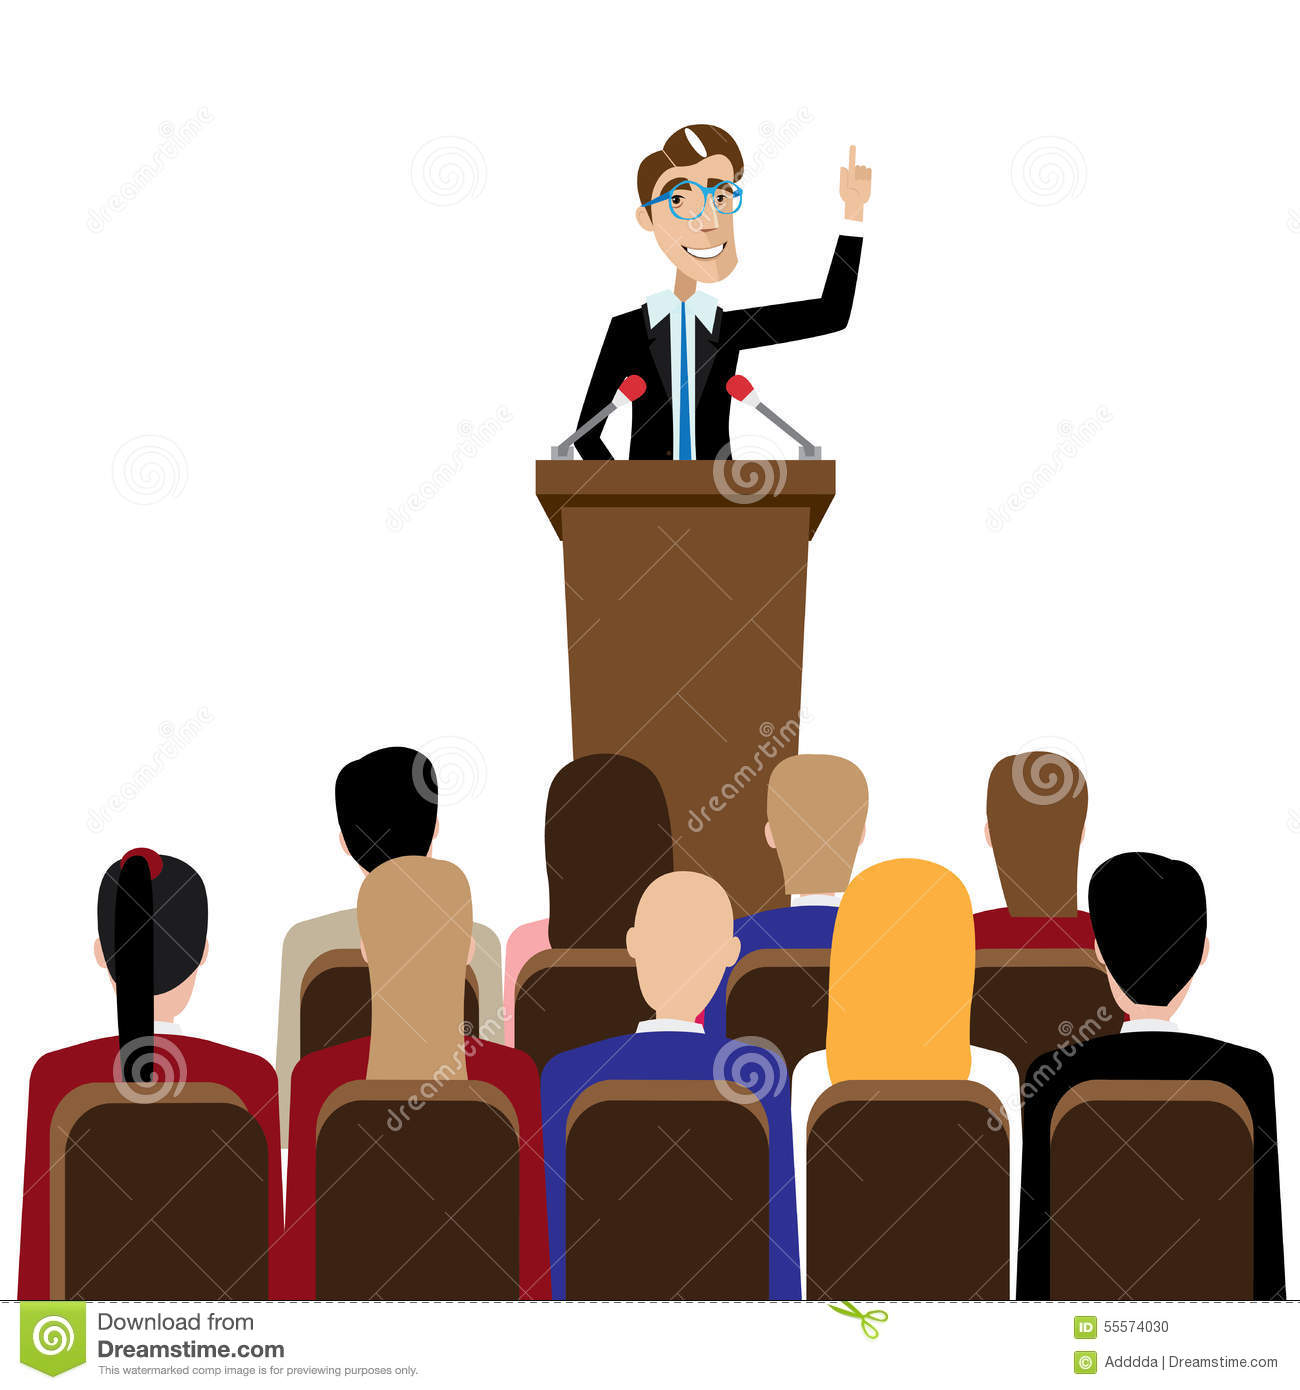 Audience clipart public. Speaking station